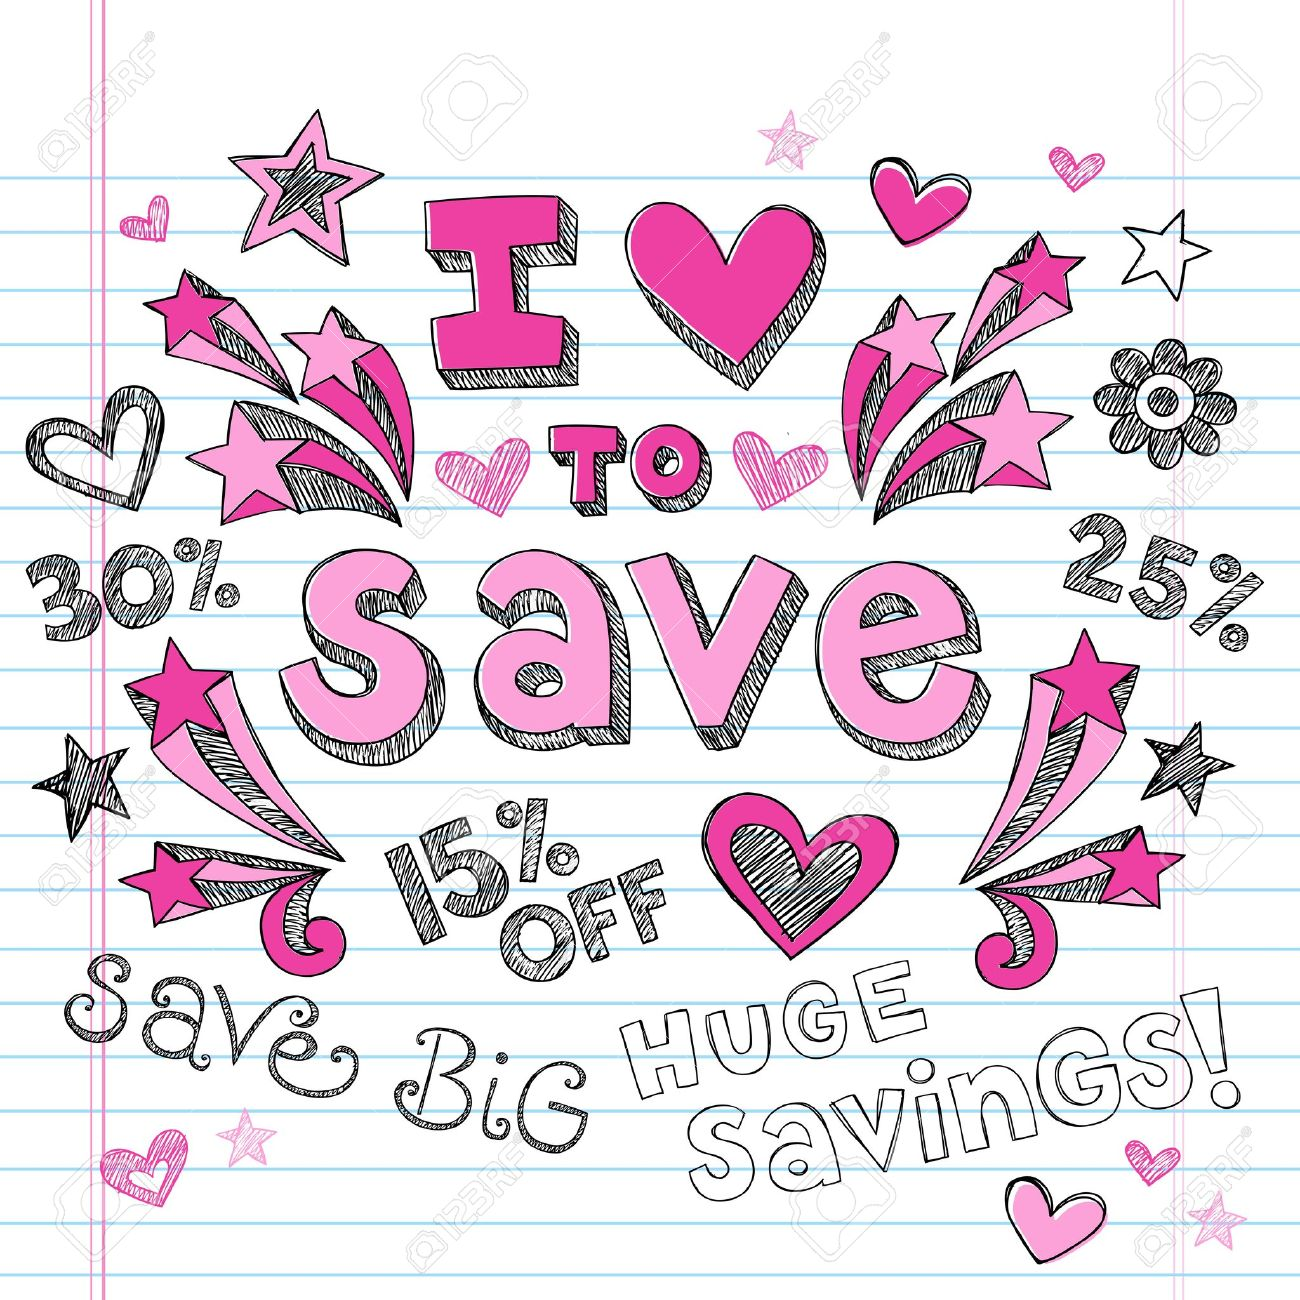 I Love to Save Sketchy Notebook Doodles Shopping Discount - Hand-Drawn Illustration Design Elements on Lined Sketchbook Paper Background Stock Vector - 14733855